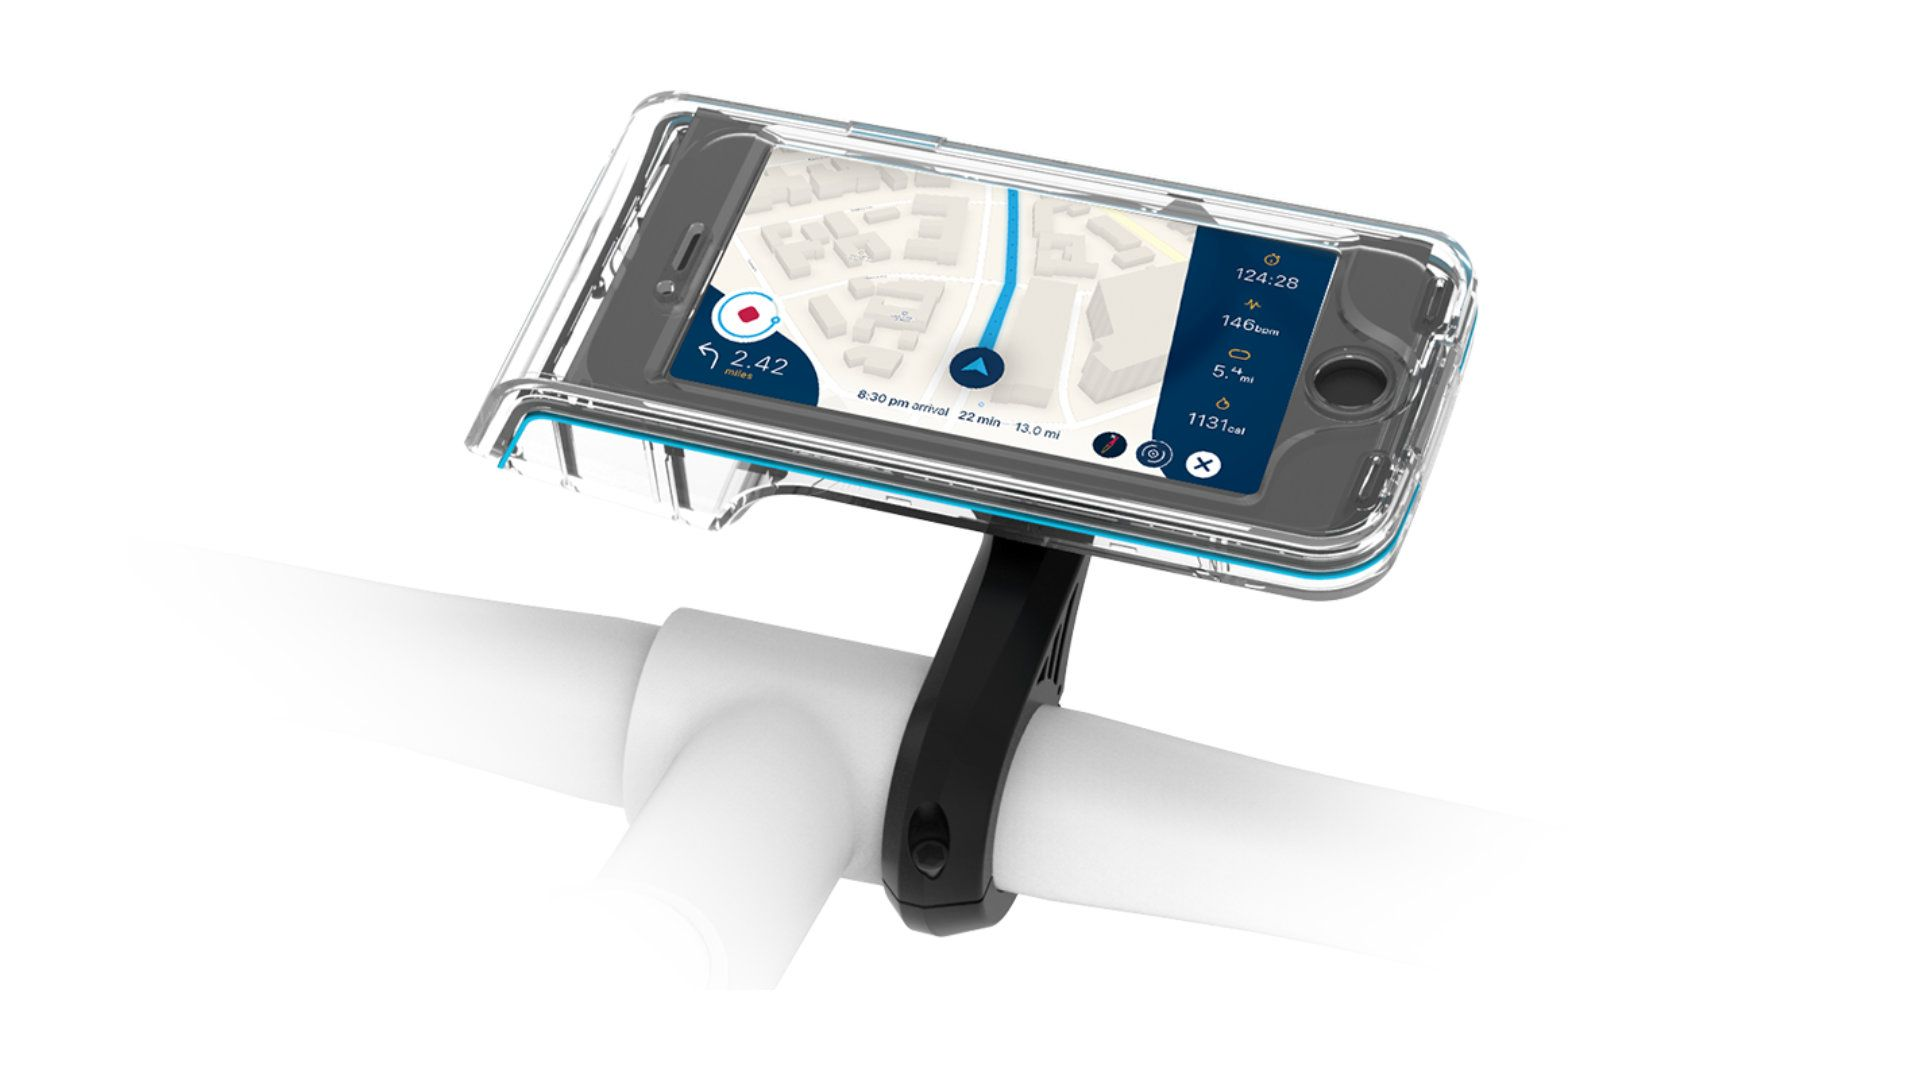 The Bycle smartphone mount utilizes a prism design that allows commuters and cyclists to record rides and share them with others.